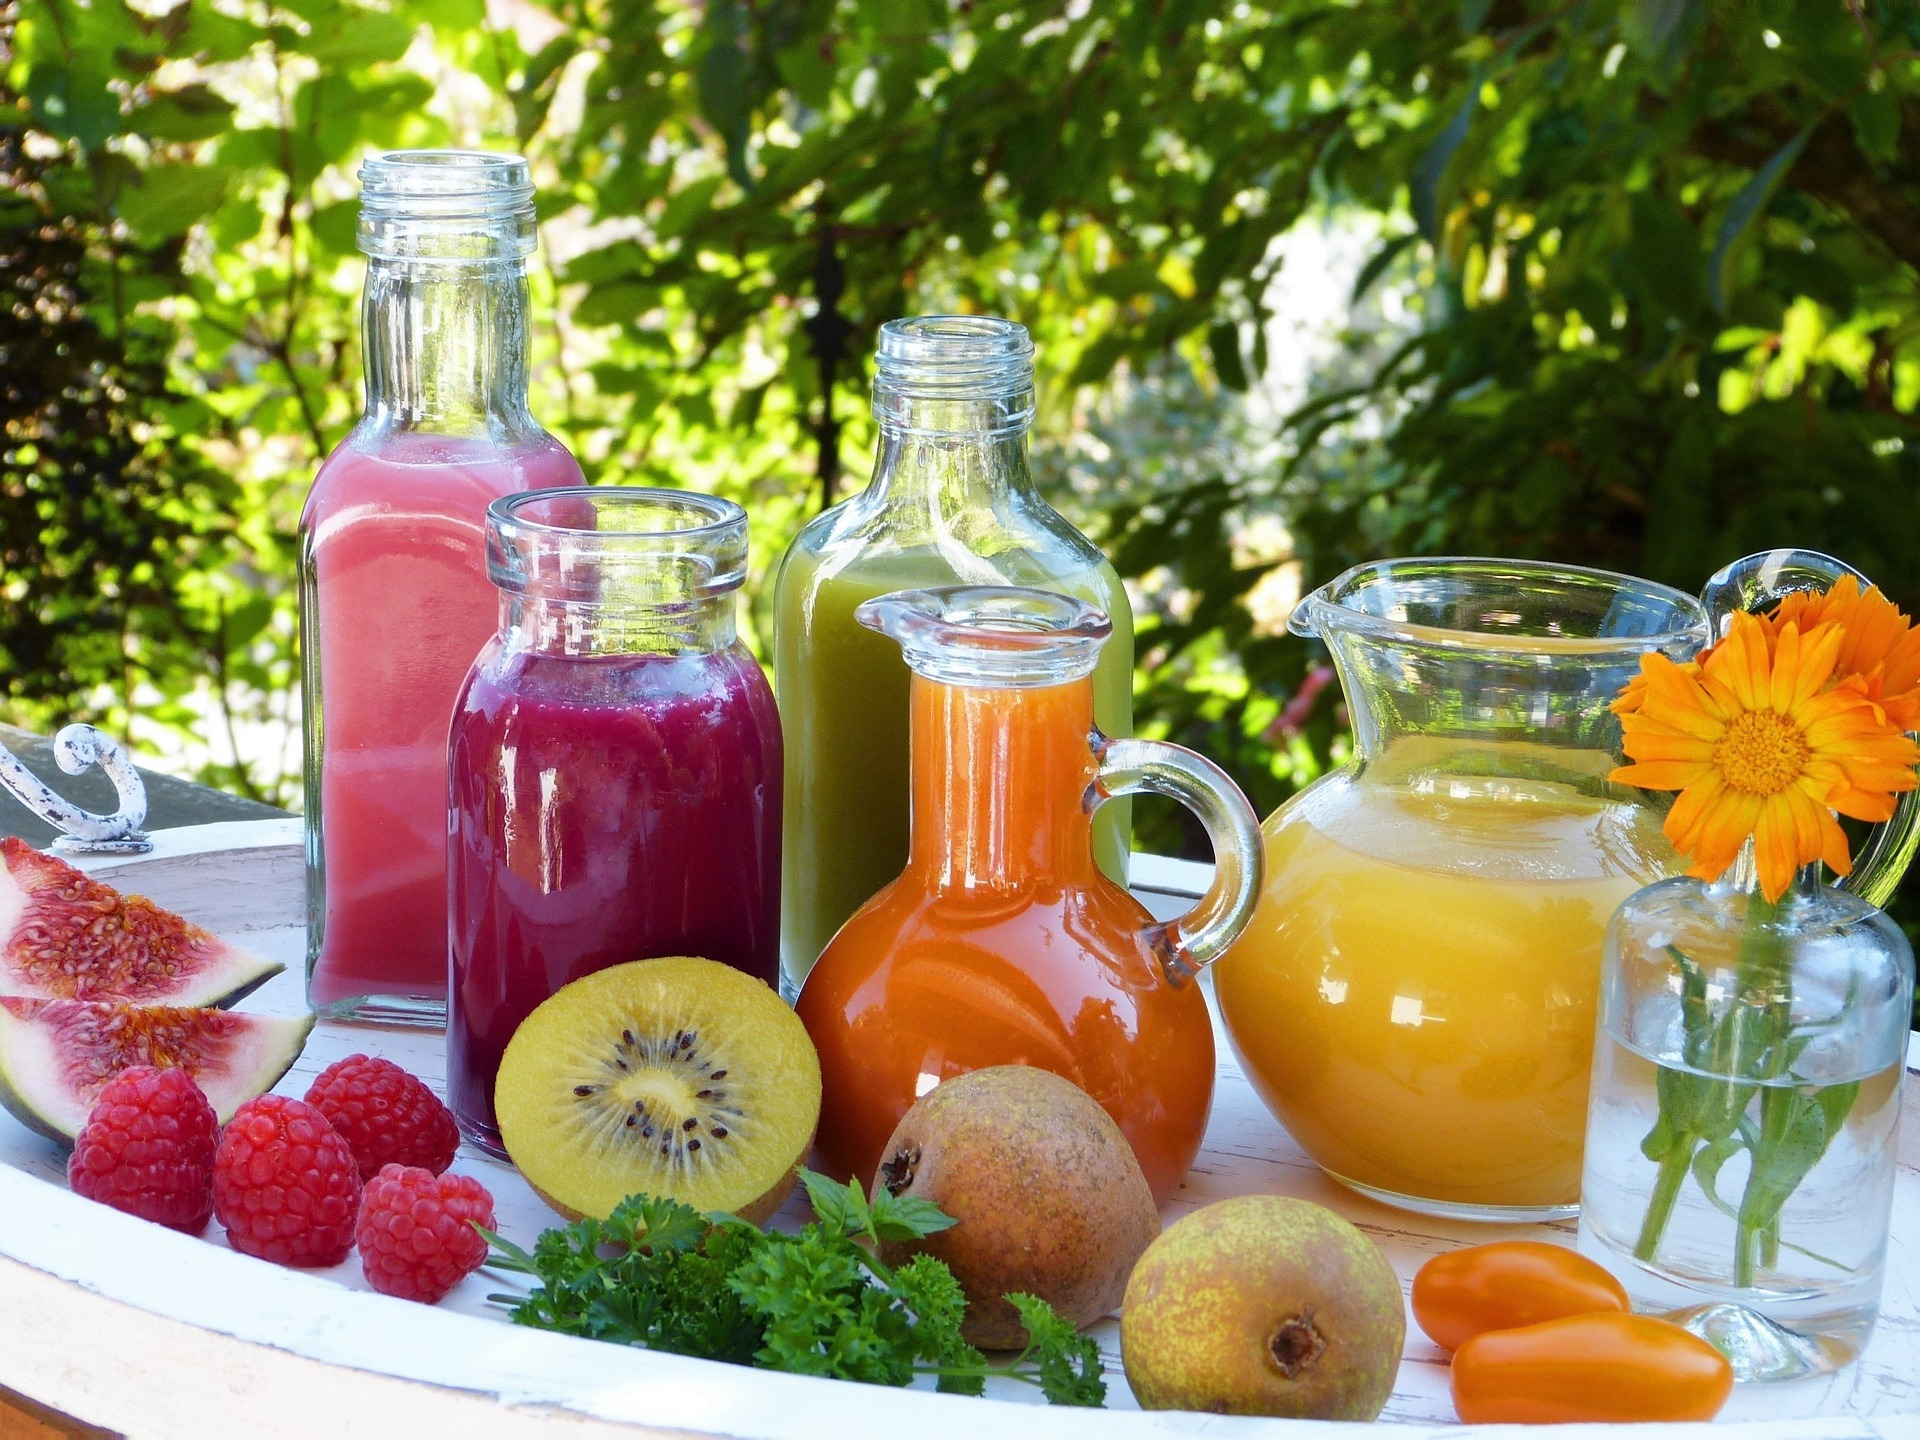 Image of fruits and vegetables and juice containers full of different juices | TAB Bank